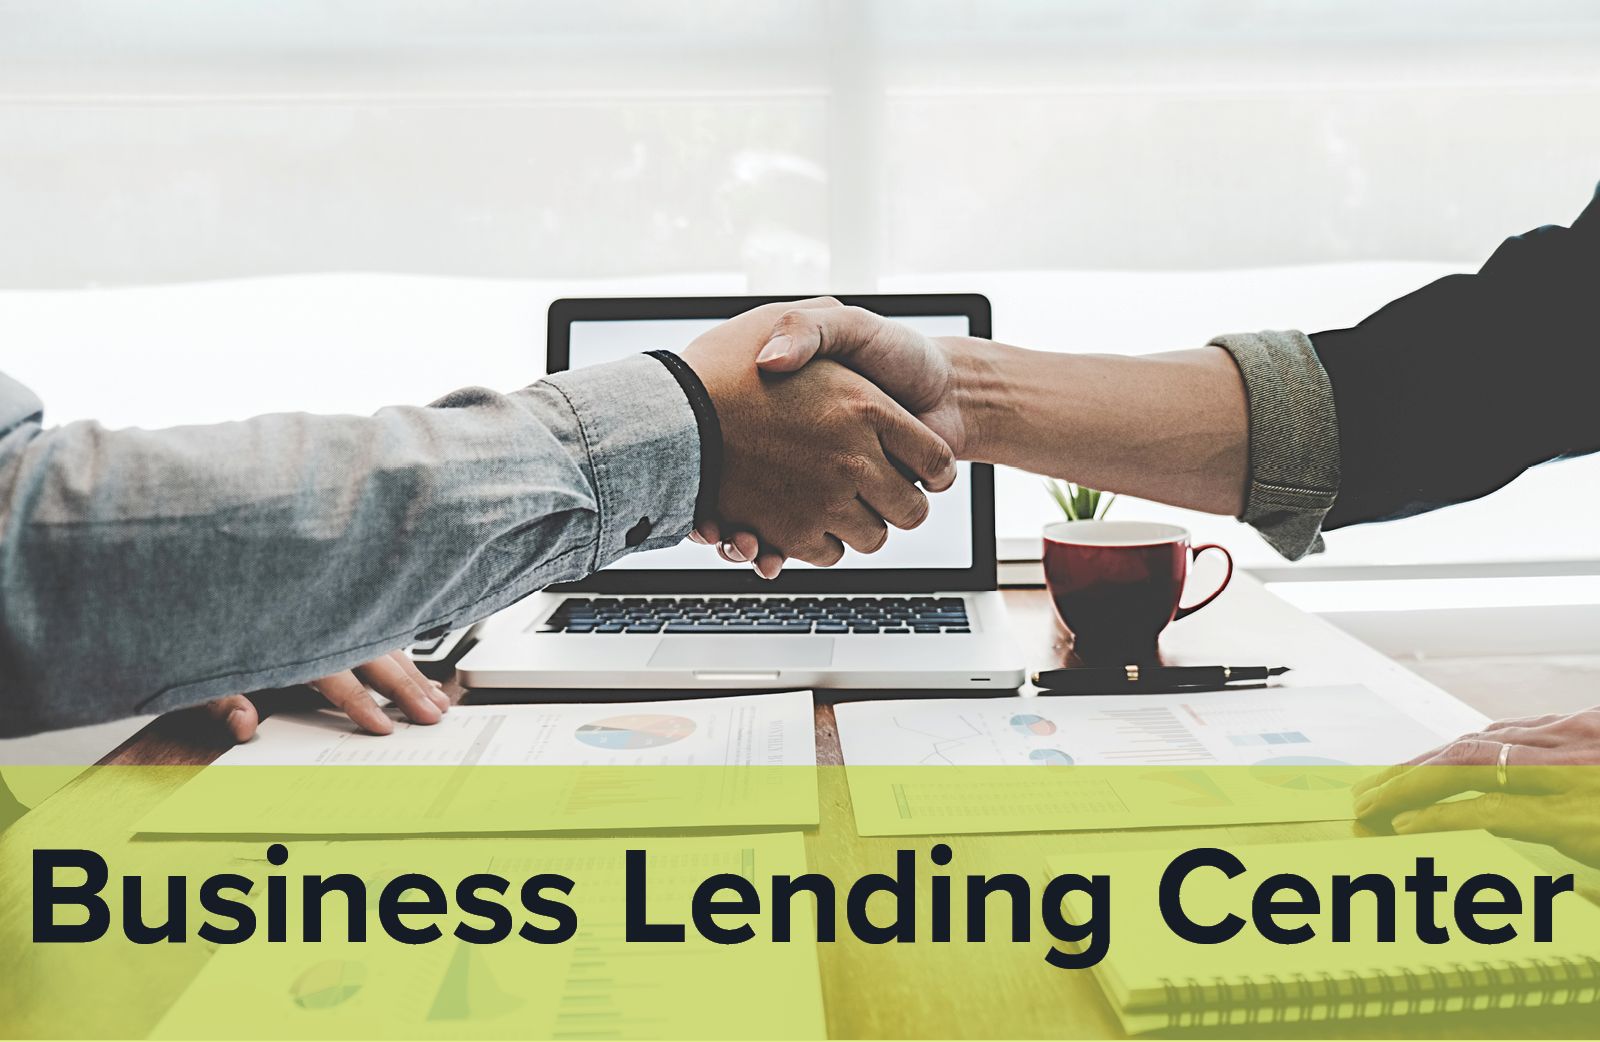 Business Lending Center